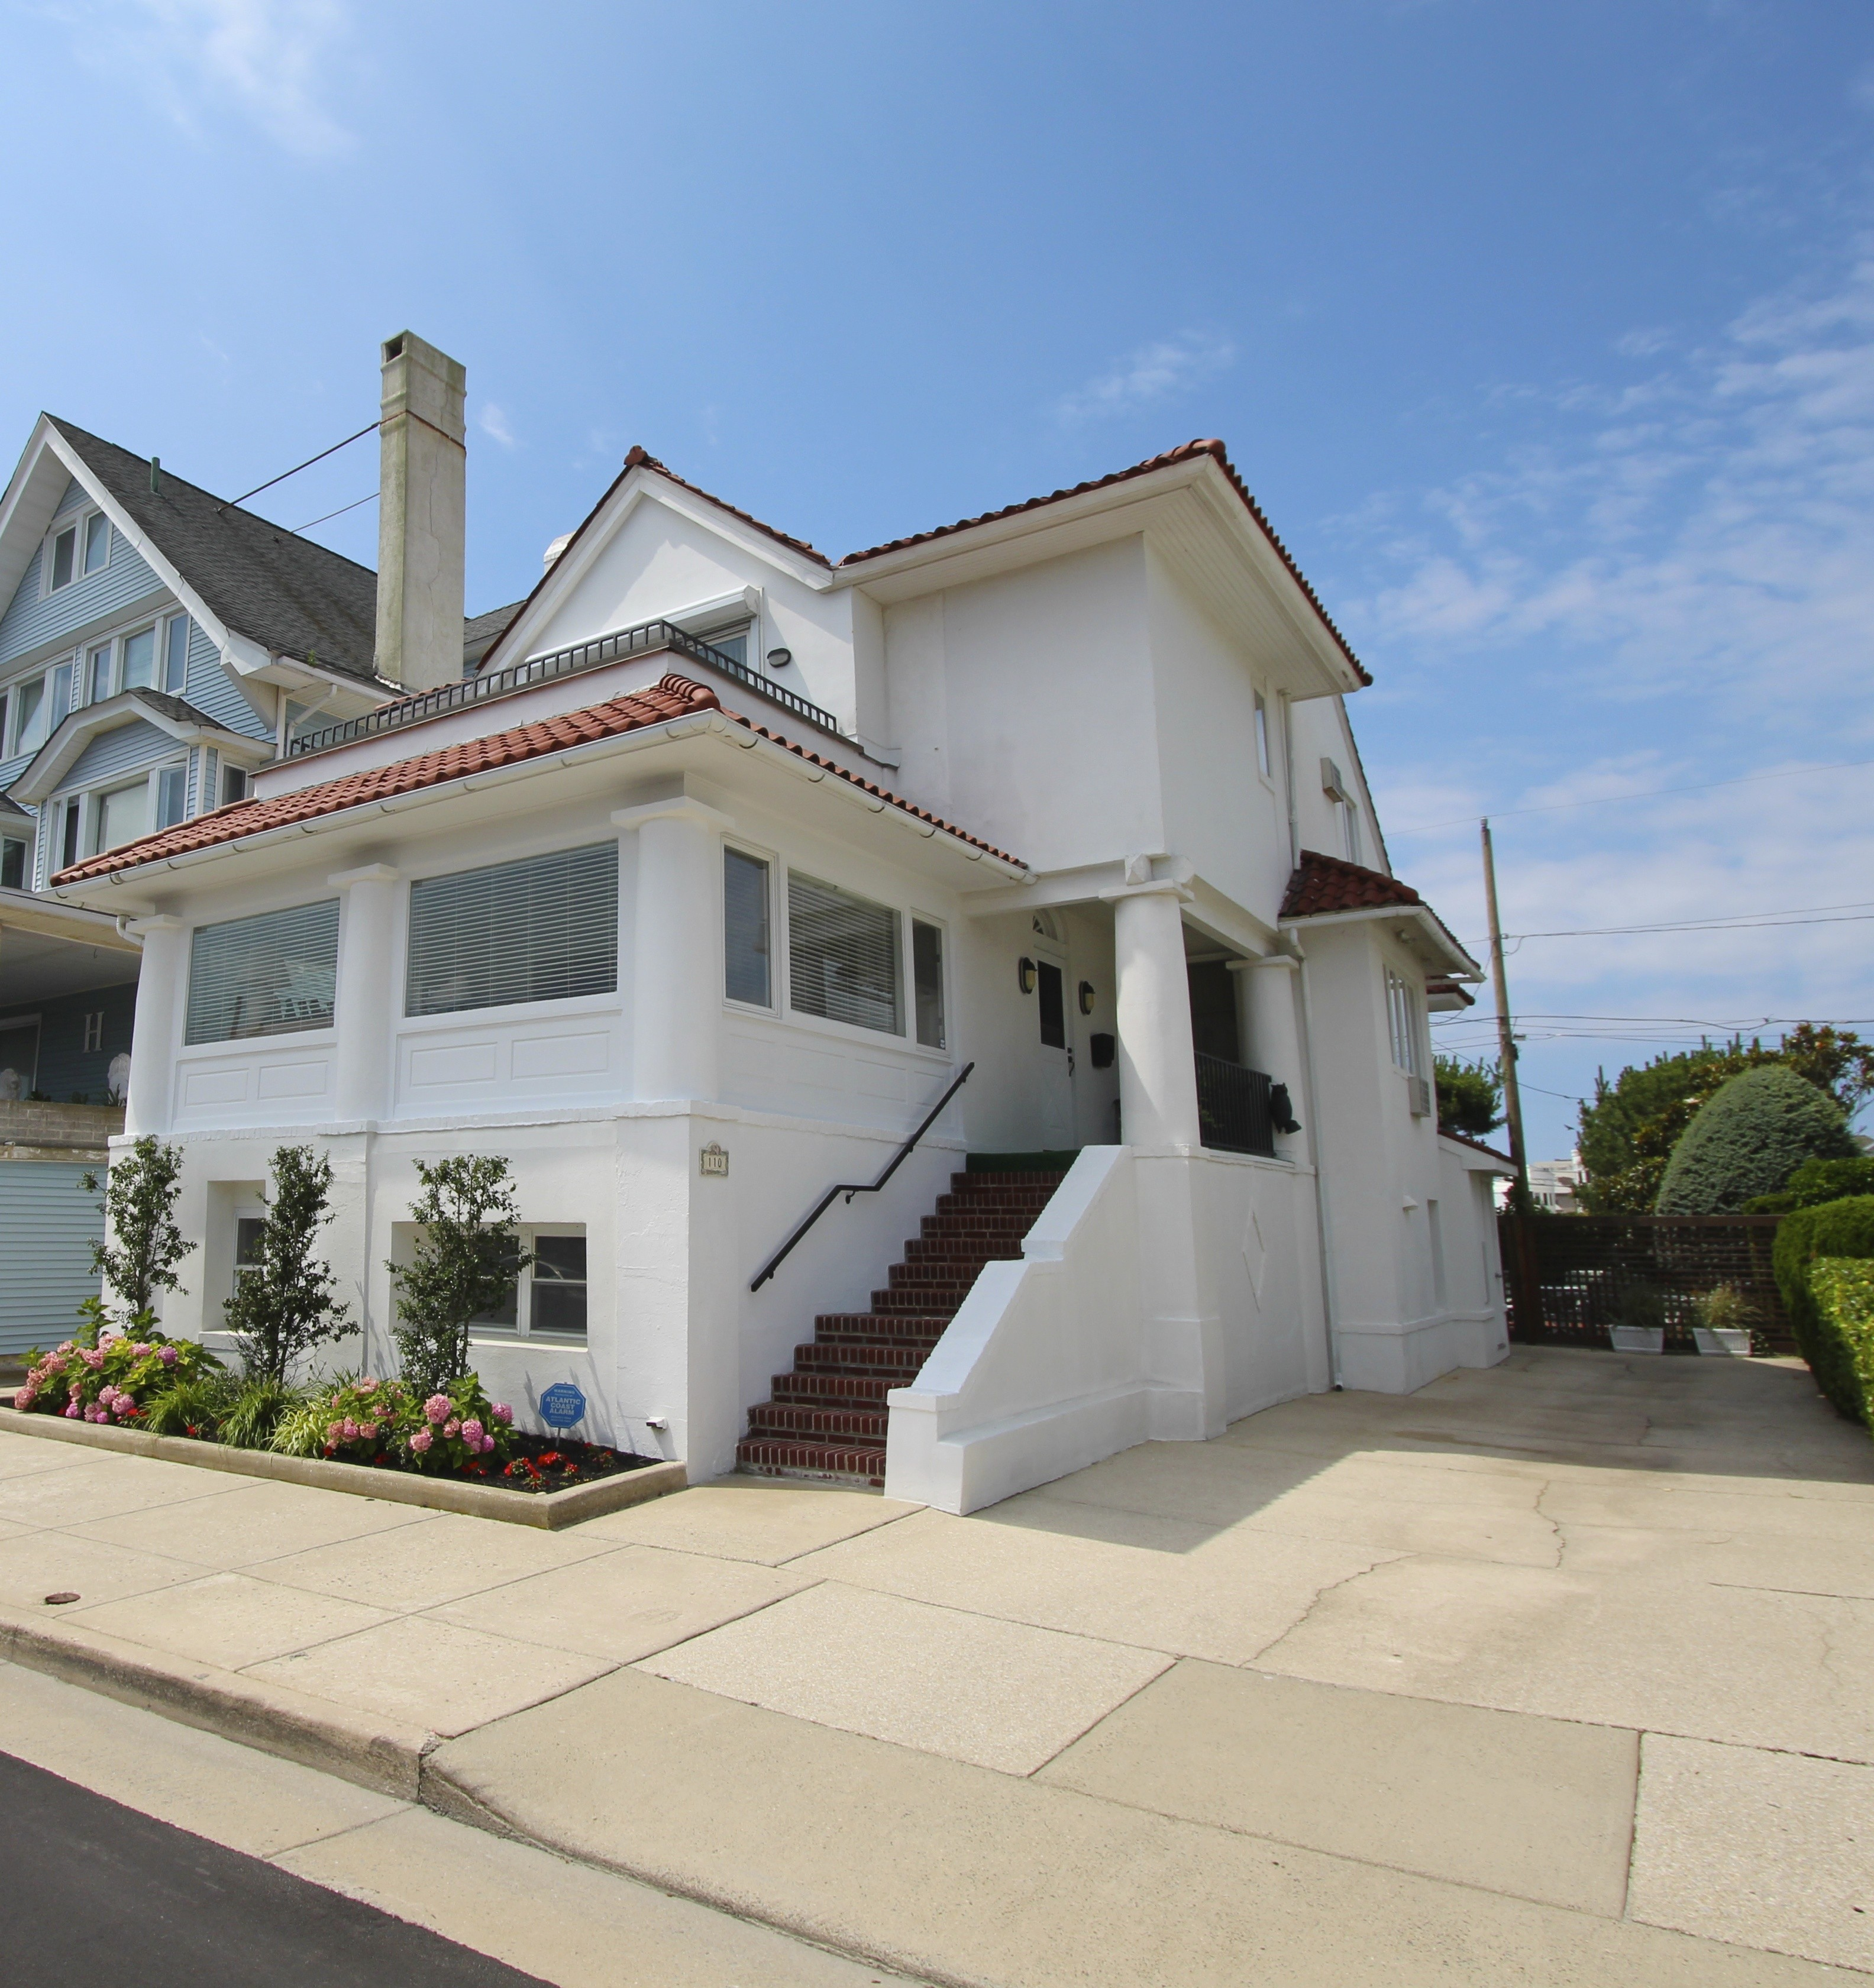 Single Family Home for Sale at 110 S Somerset Ventnor, New Jersey 08406 United States